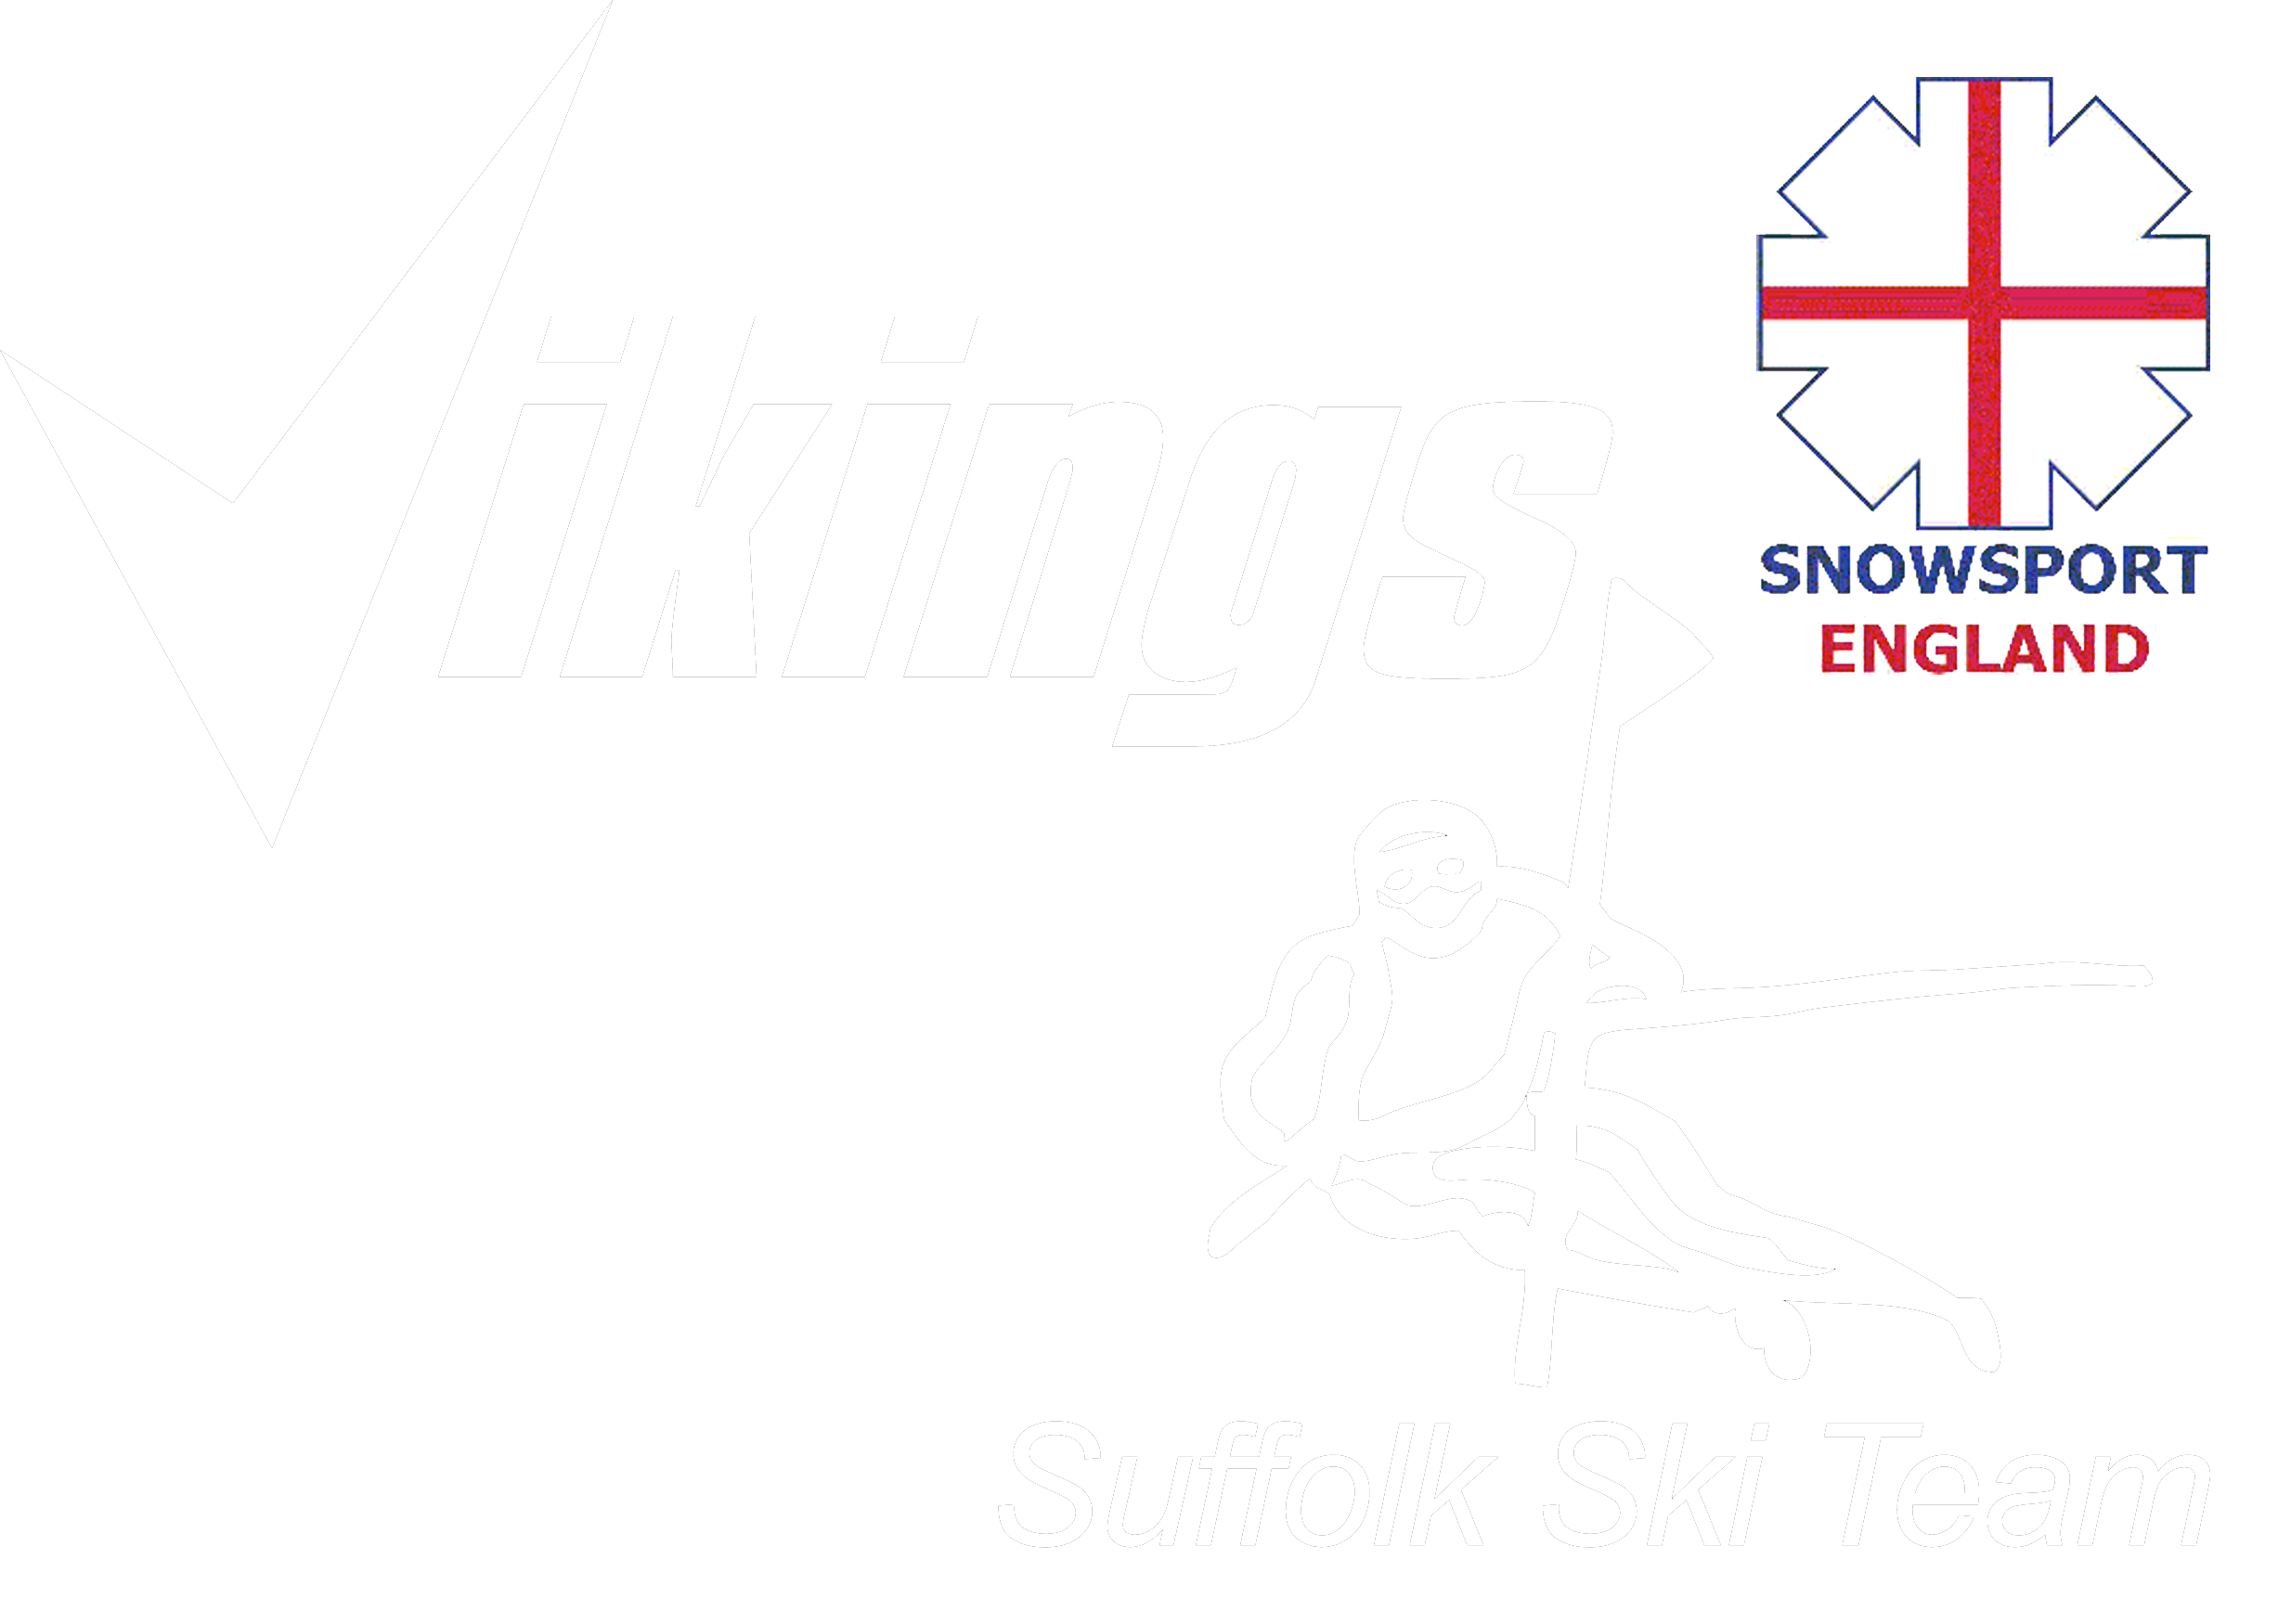 Suffolk Vikings Ski Team